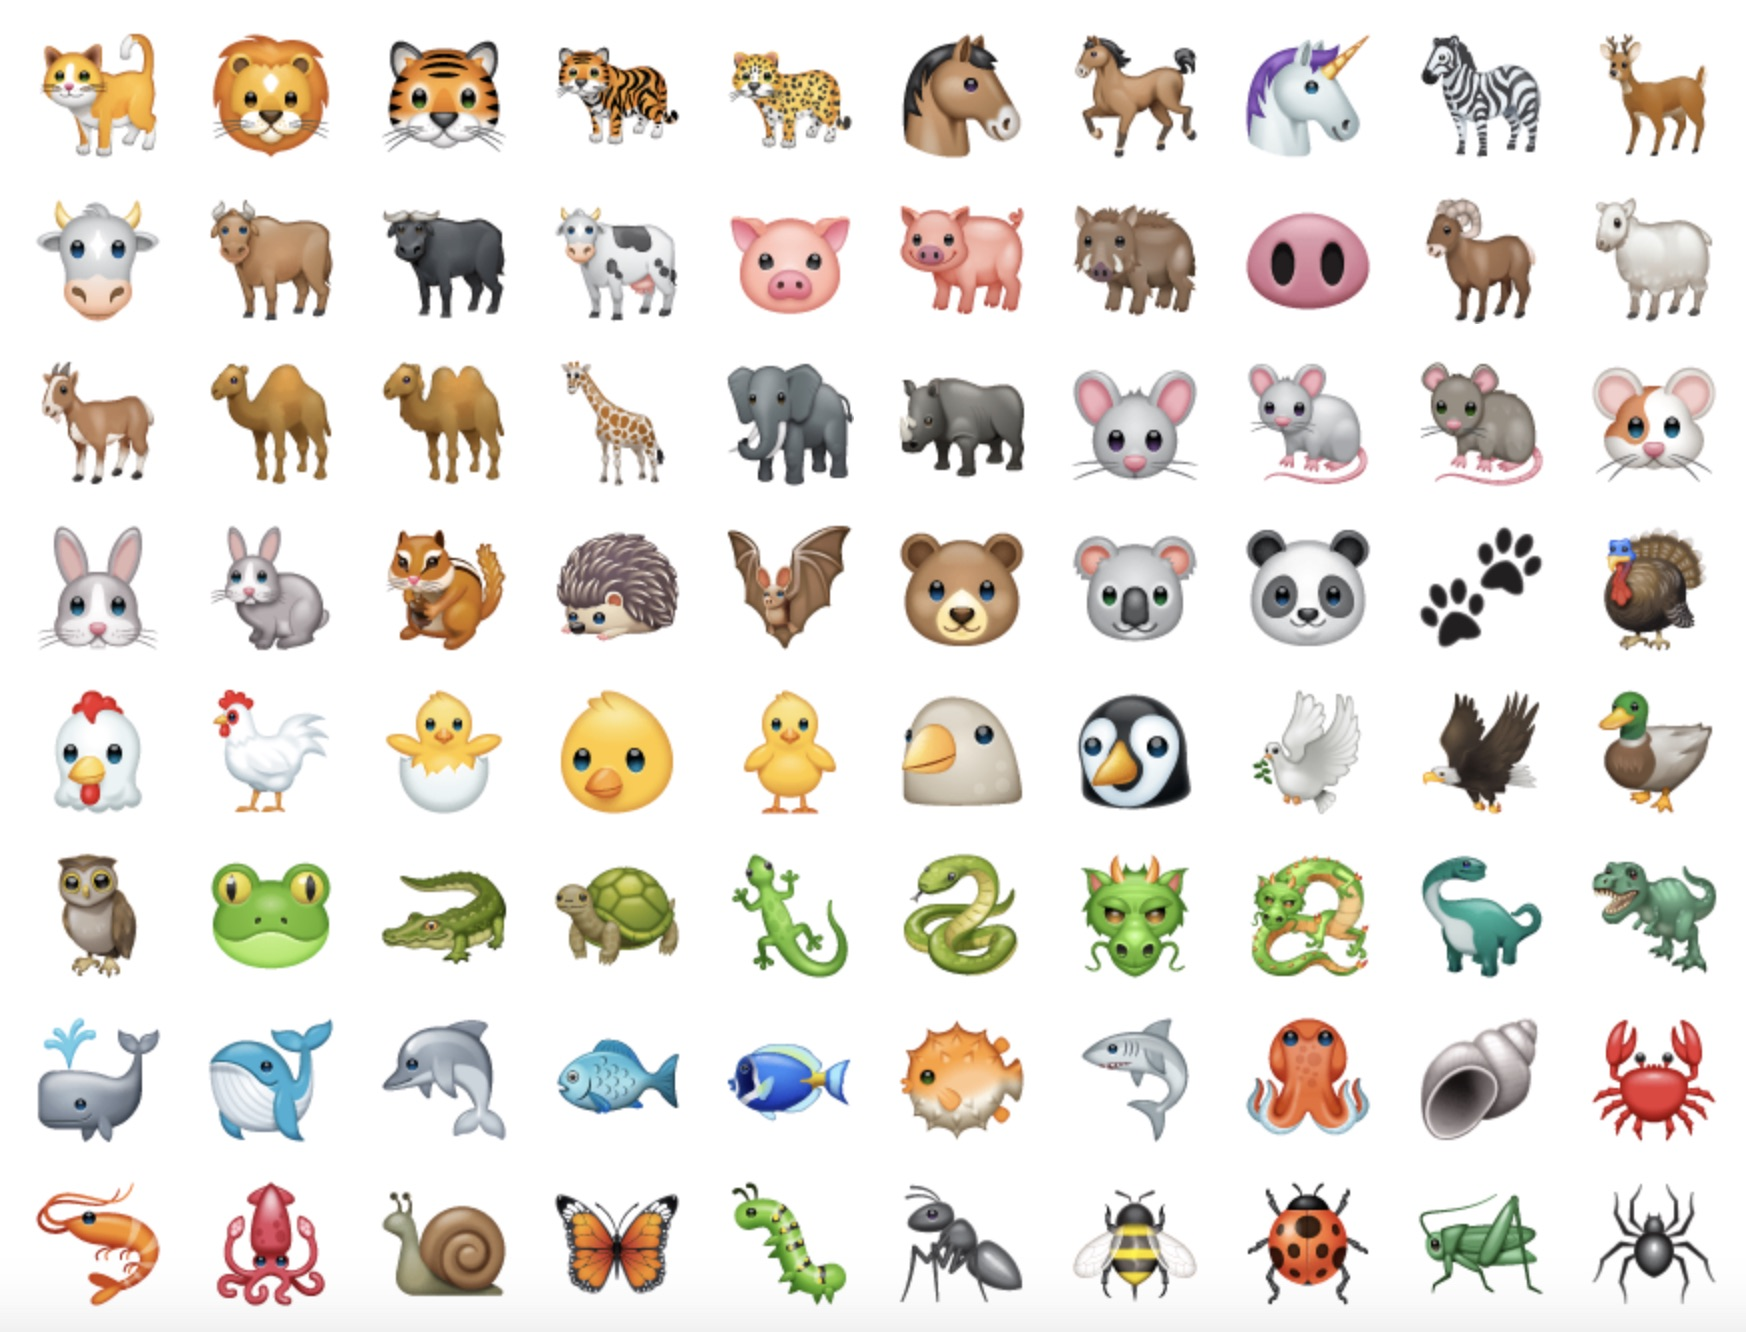 whatsapp-new-emoji-animals-emojipedia-android-2.17